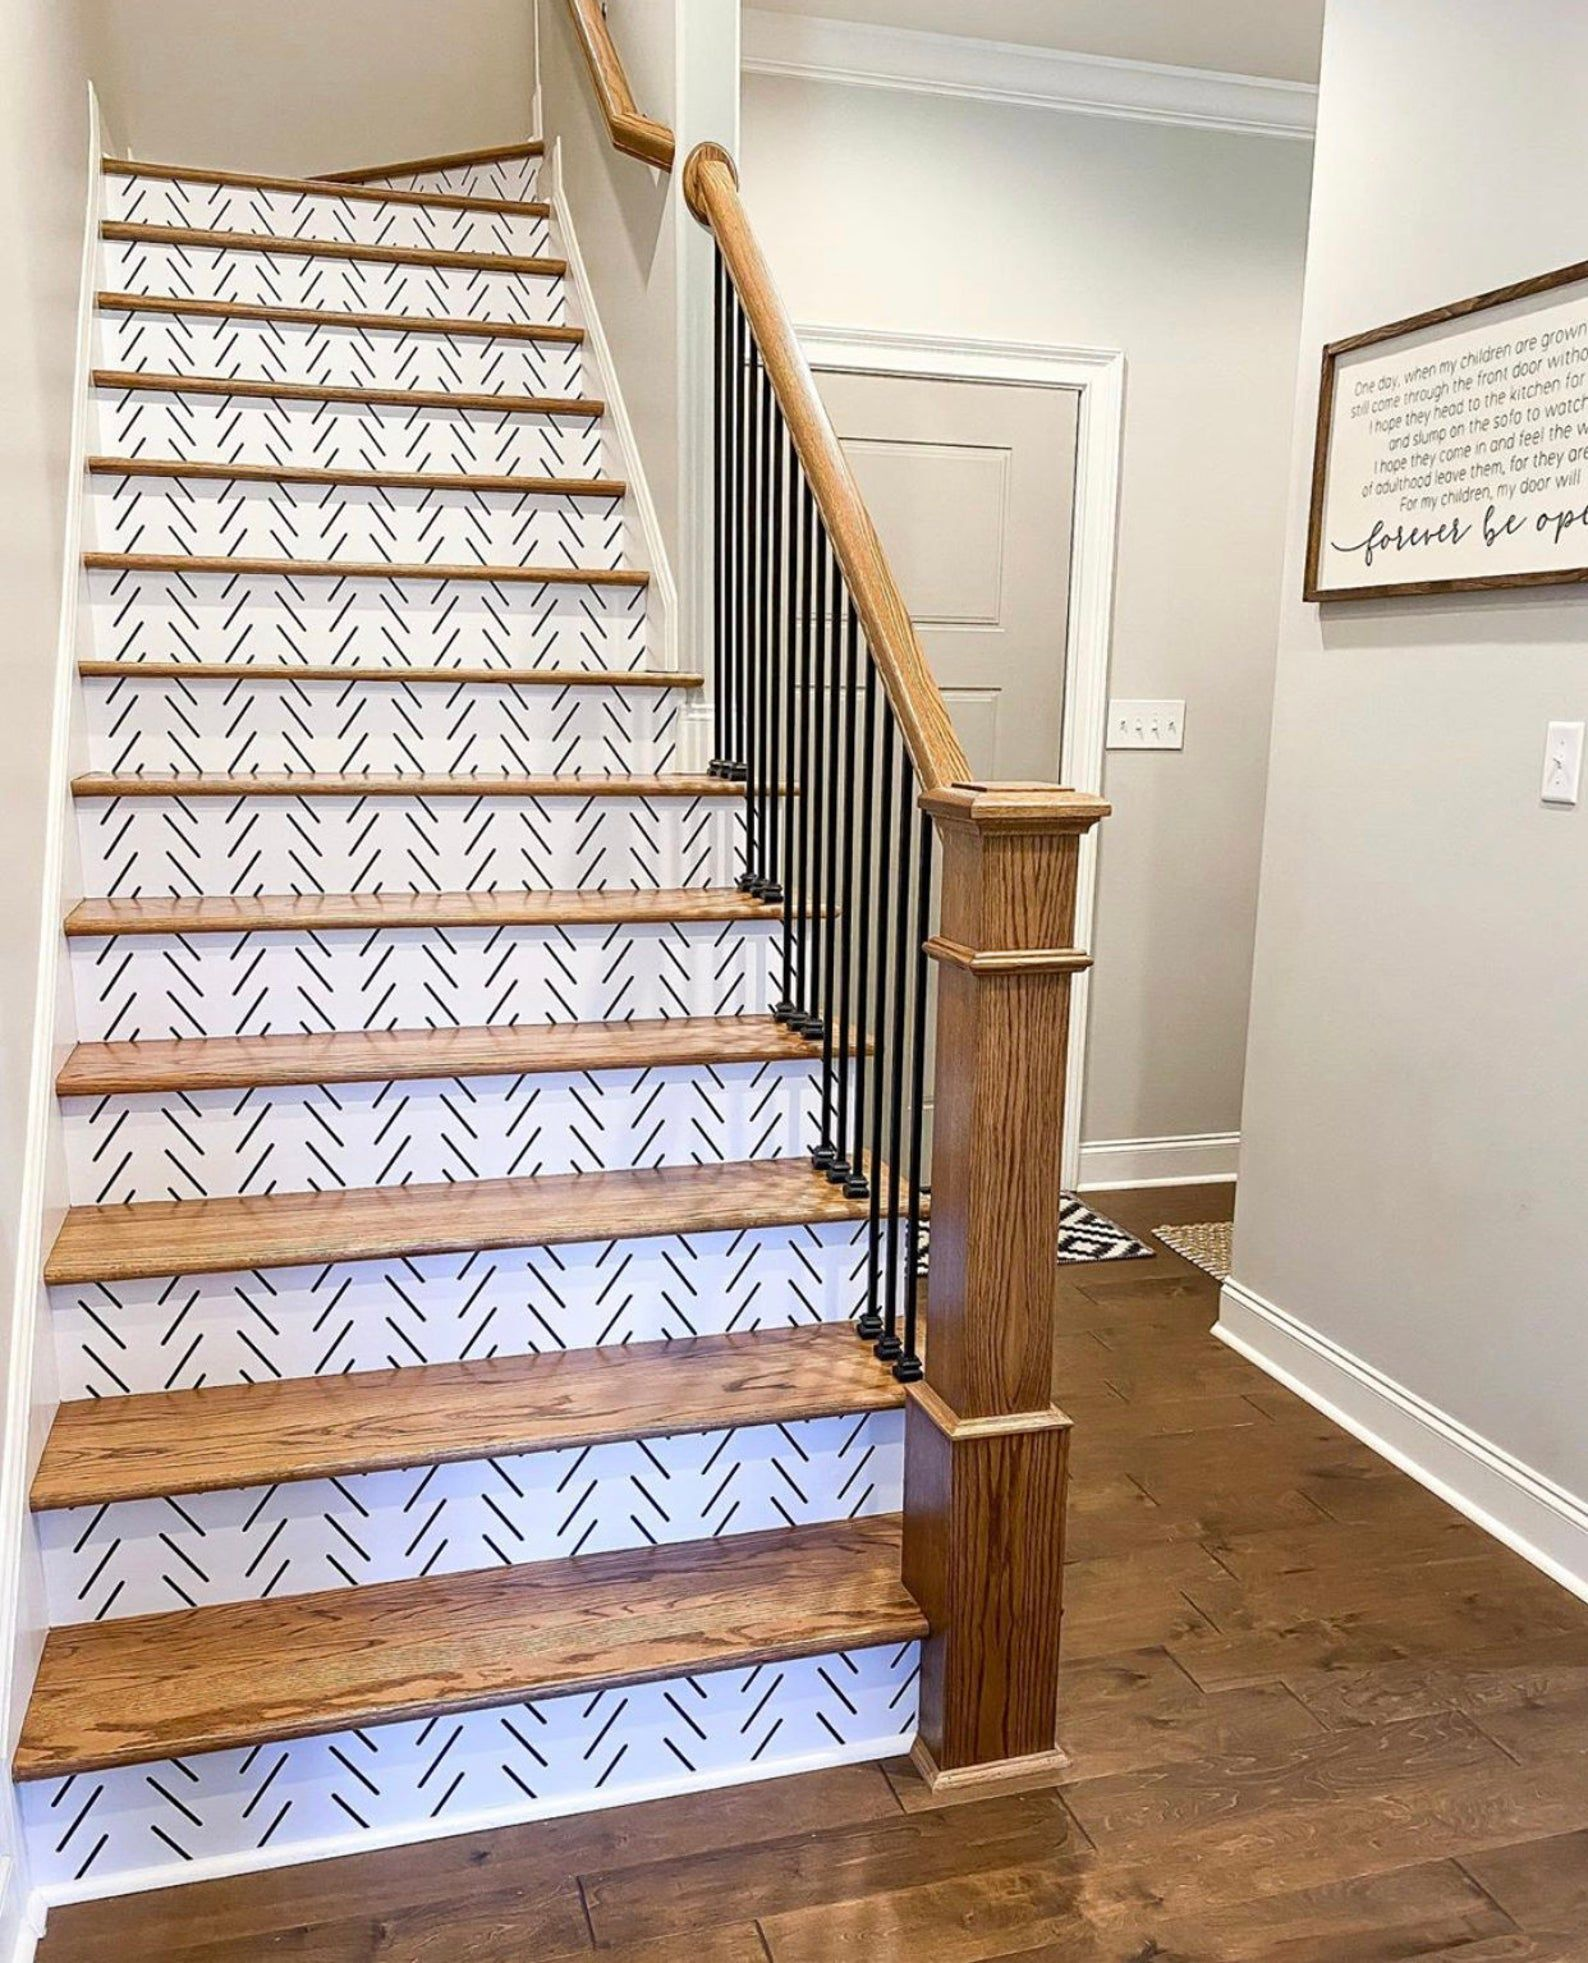 Stair Riser Decals Peel and stick Removable sticke